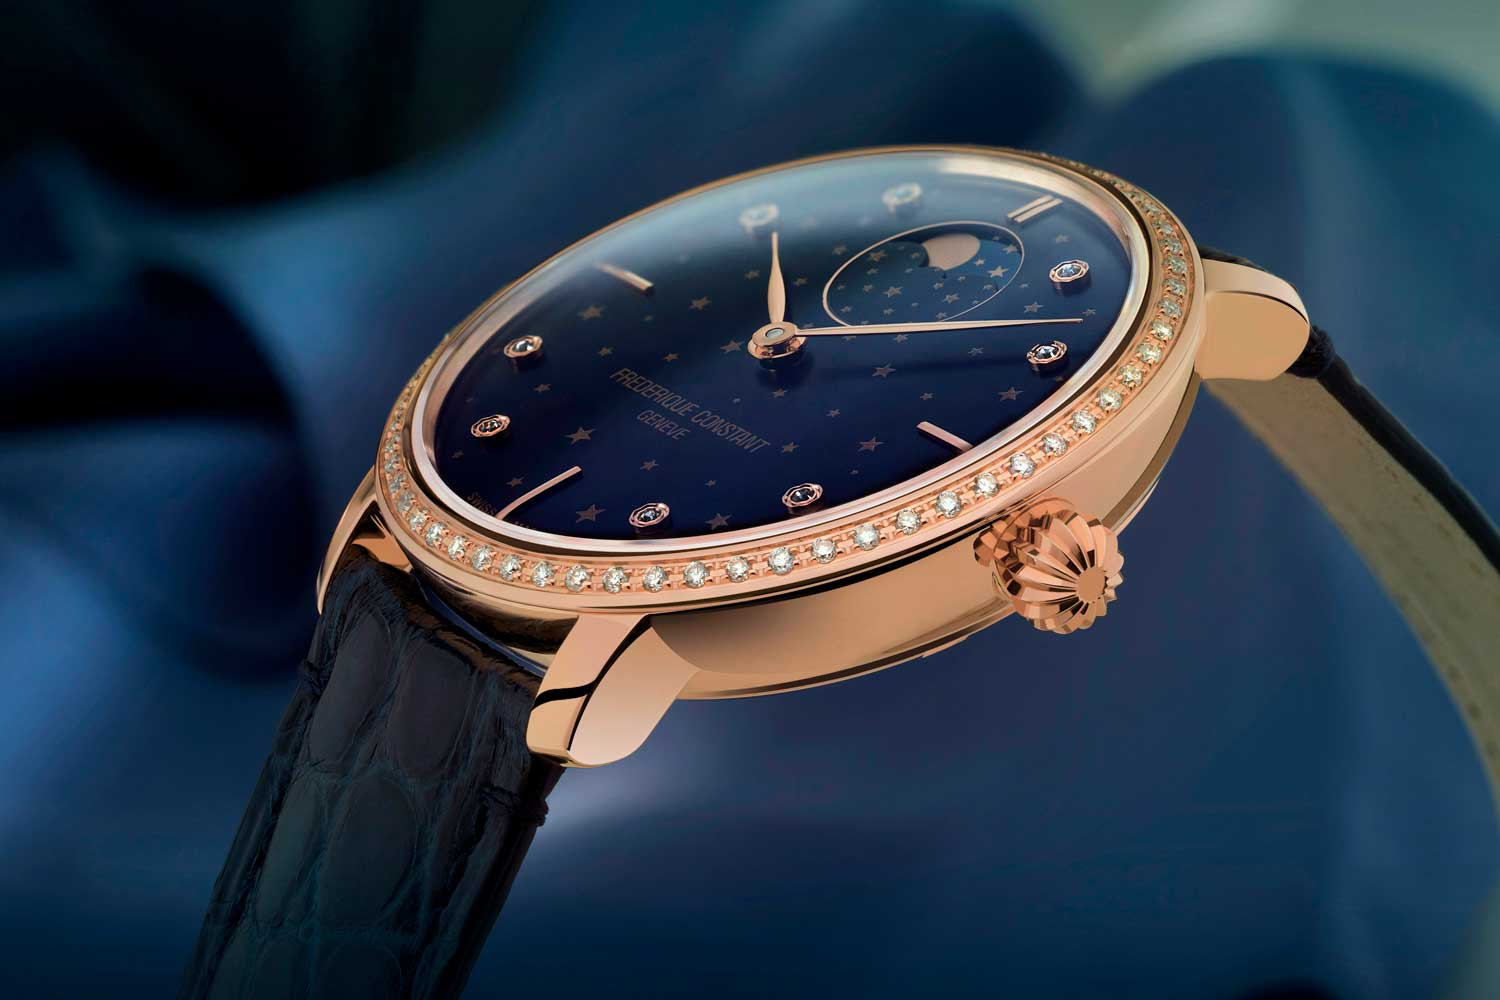 đồng hồ Slimline Moonphase Stars Manufacture màu xanh